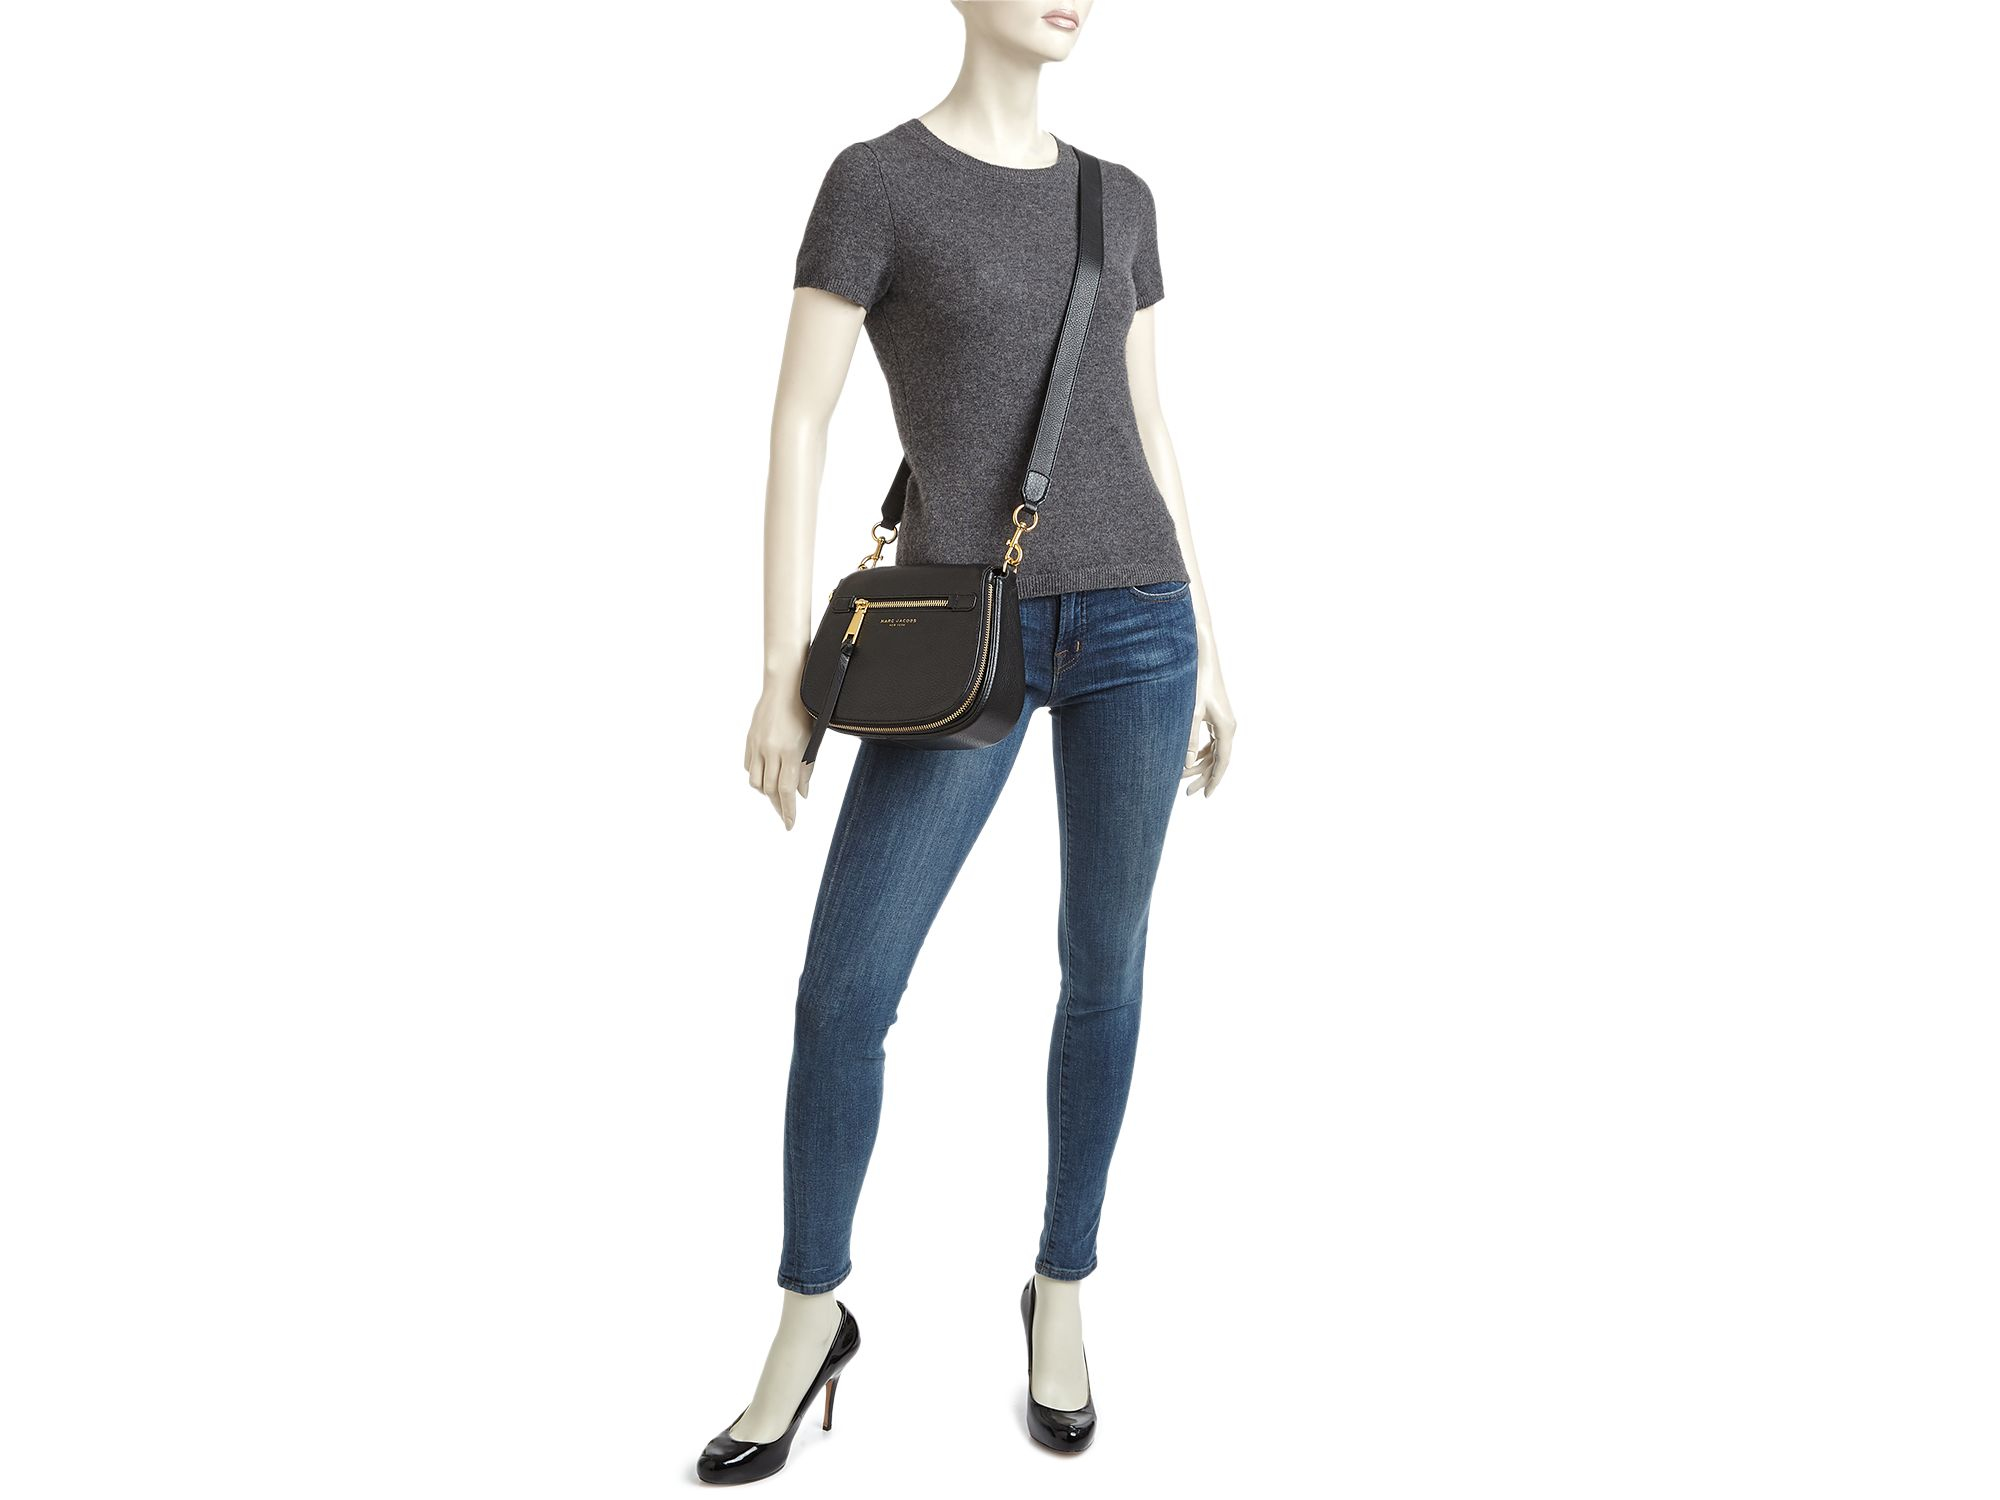 492274dd3c Gallery. Previously sold at  Bloomingdale s · Women s Saddle Bags Women s Marc  Jacobs ...